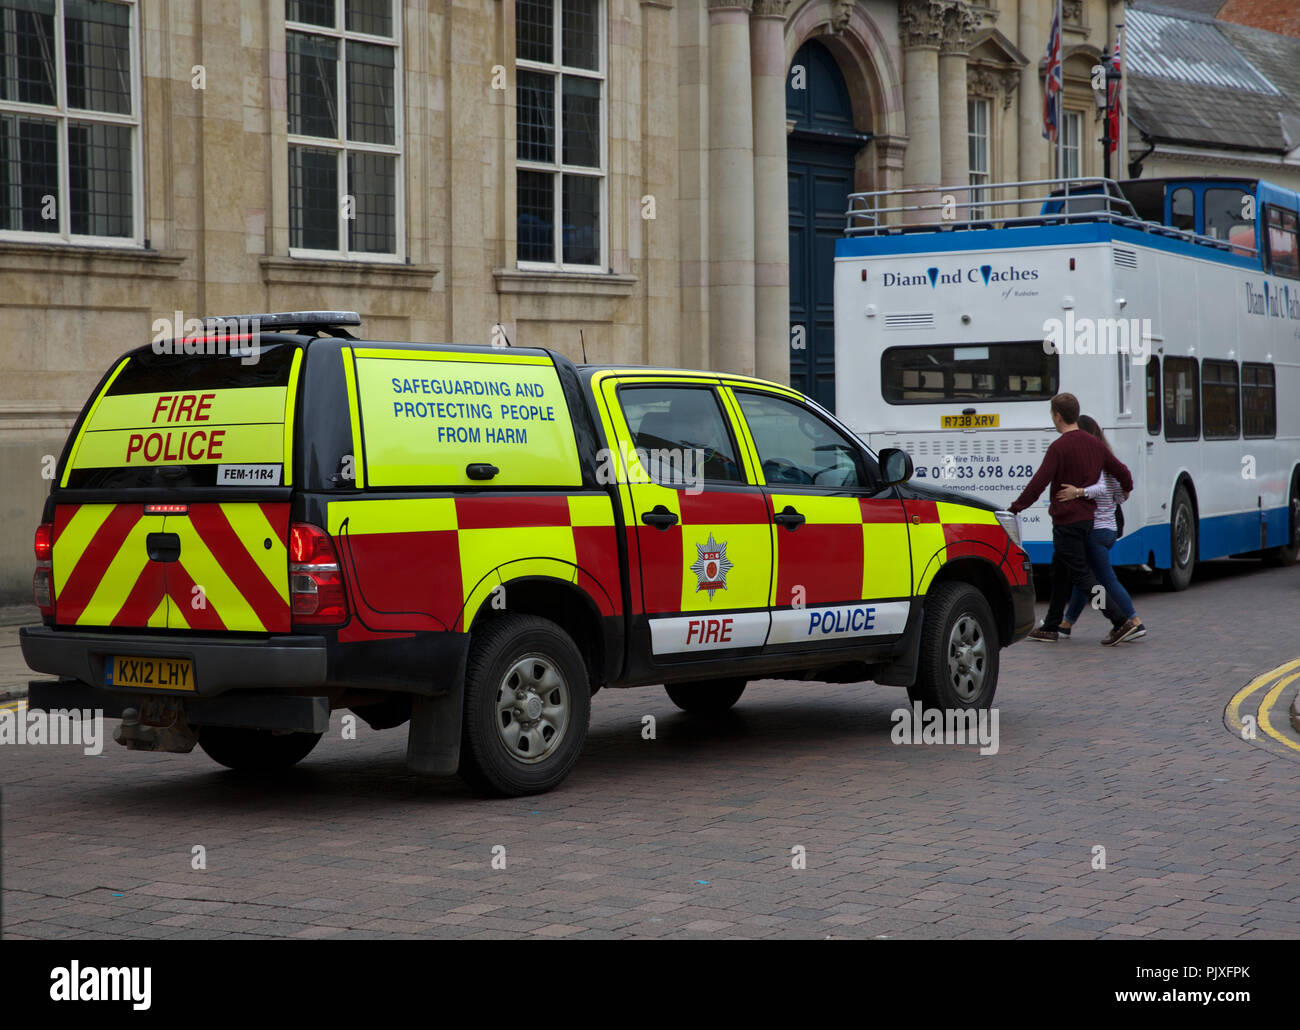 Combined Fire/Police vehicle driving down a street in Northampton,UK - Stock Image